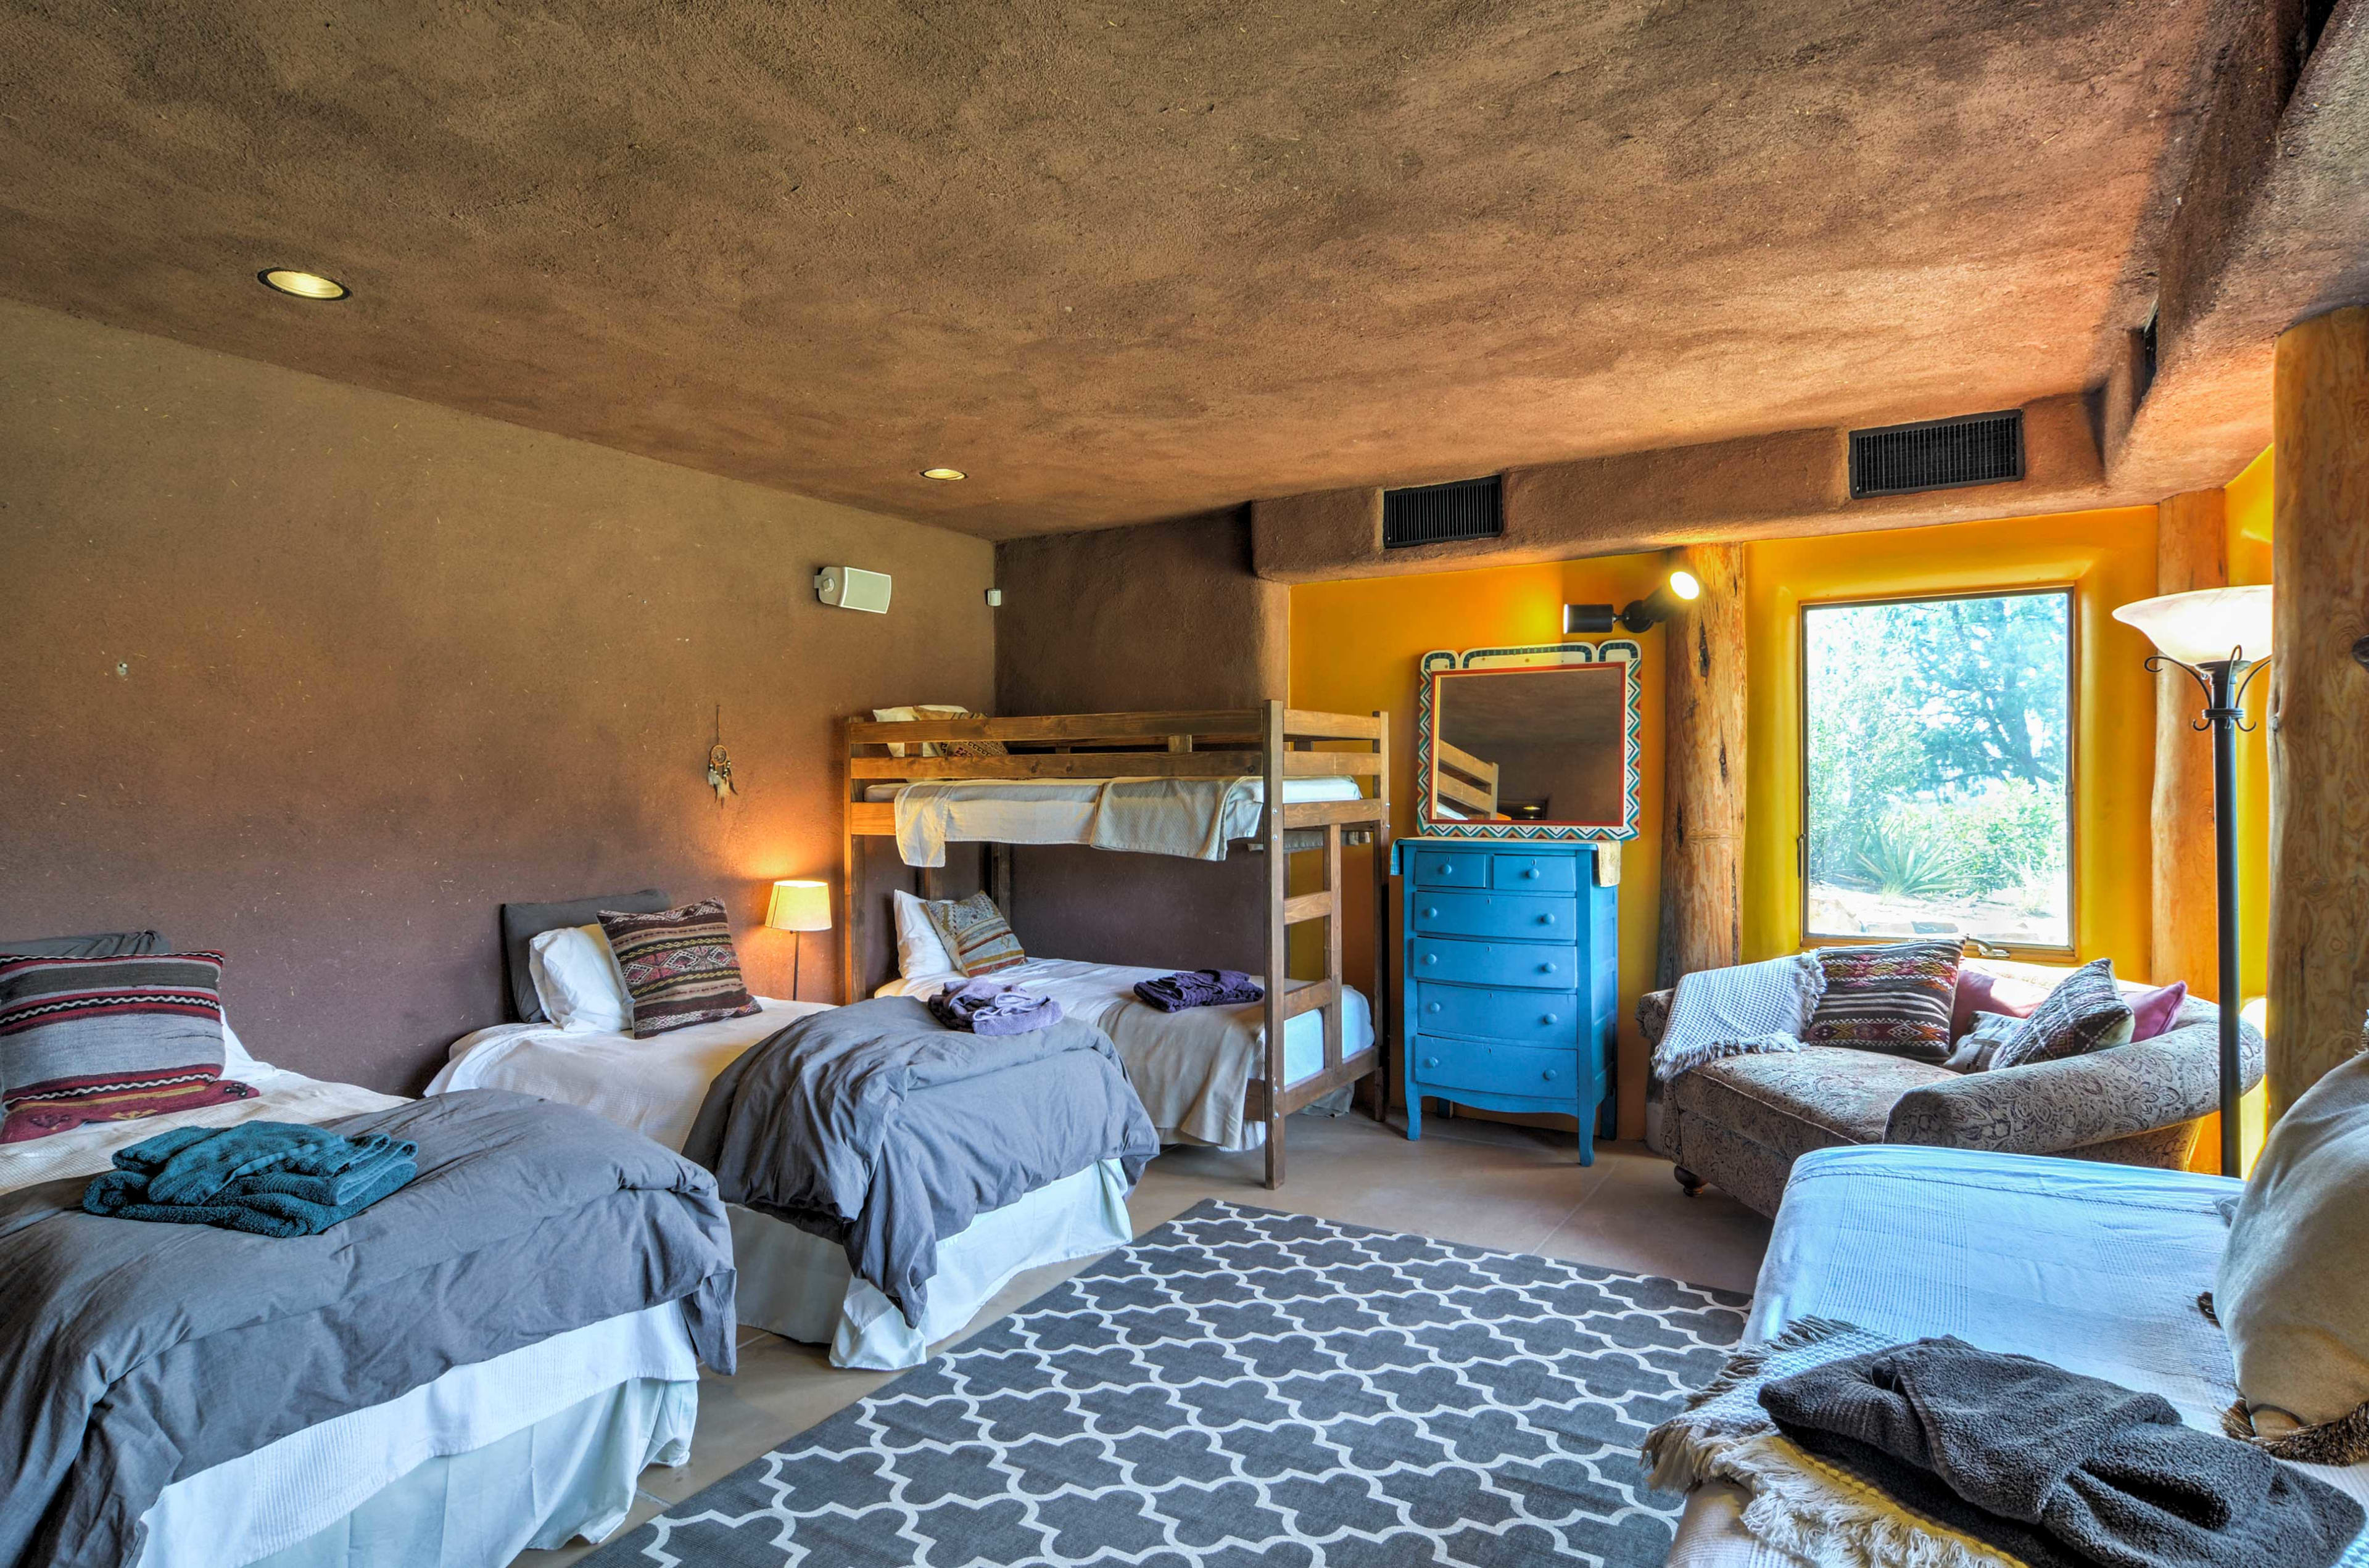 This room includes 2 twin beds, a twin-over-twin bunk bed and futon.